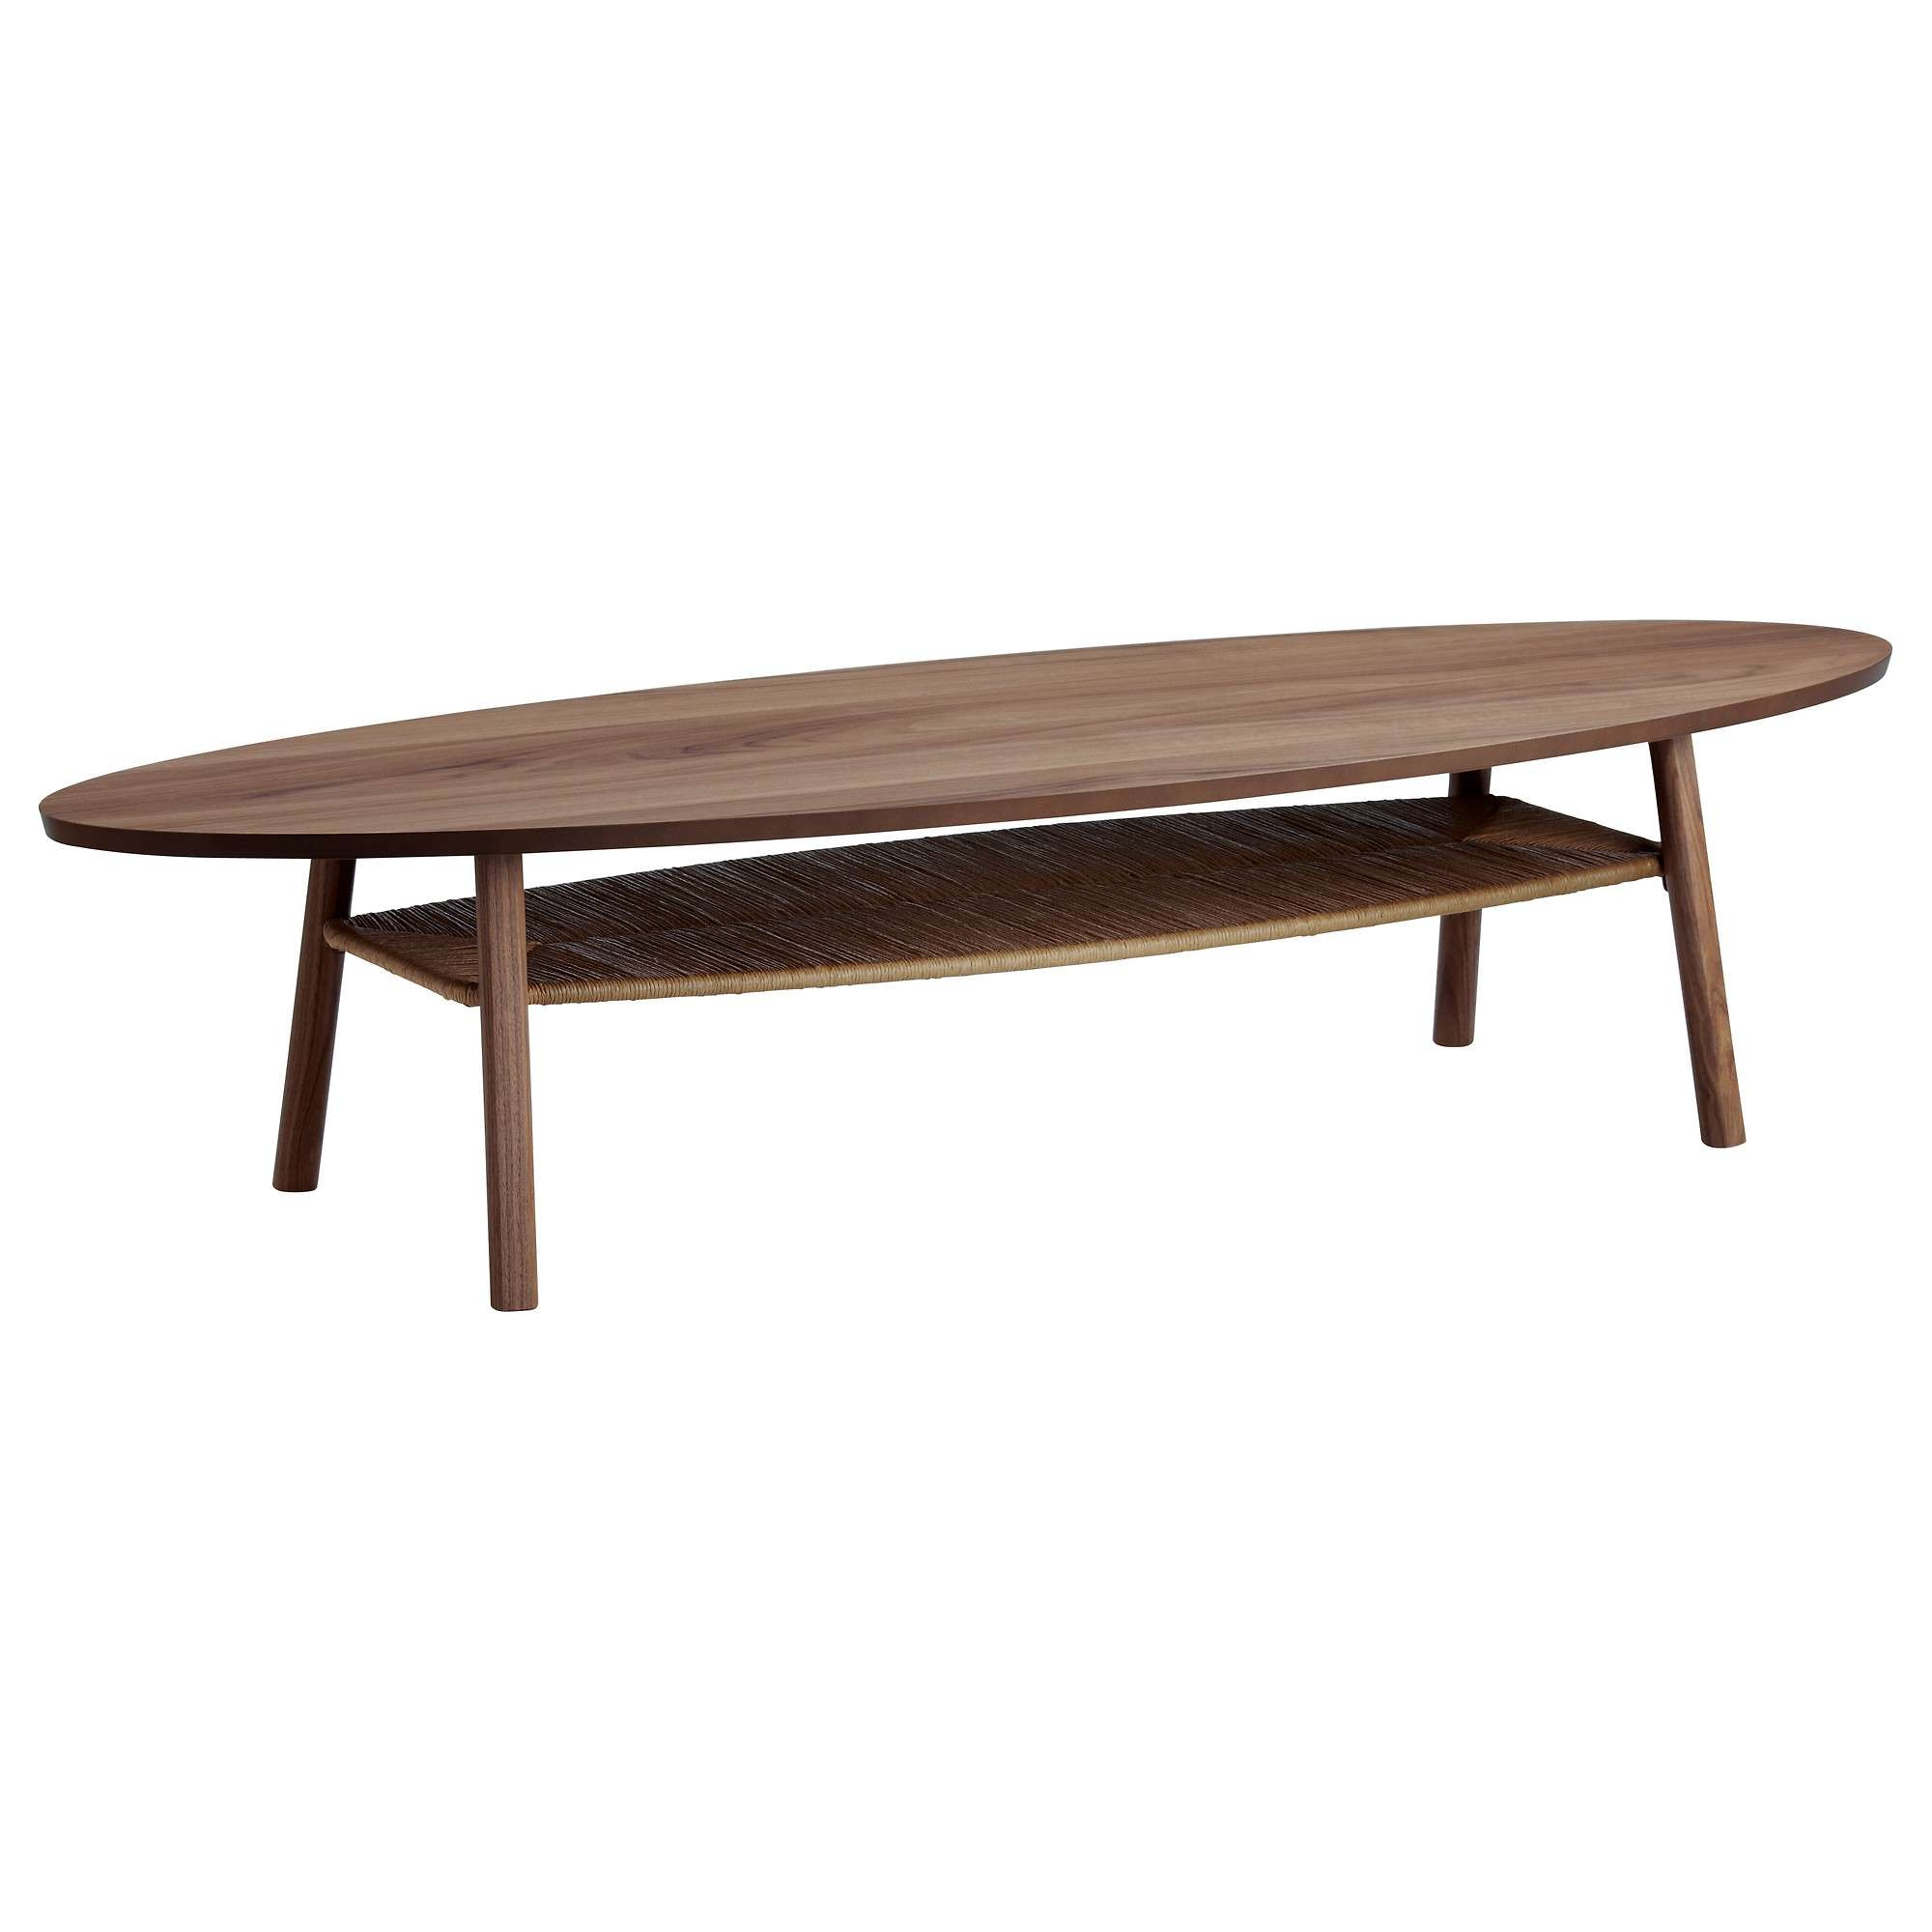 "Stockholm Coffee Table – Walnut Veneer, 70 7/8X23 1/4 "" – Ikea Pertaining To Latest Oval Wood Coffee Tables (View 18 of 20)"